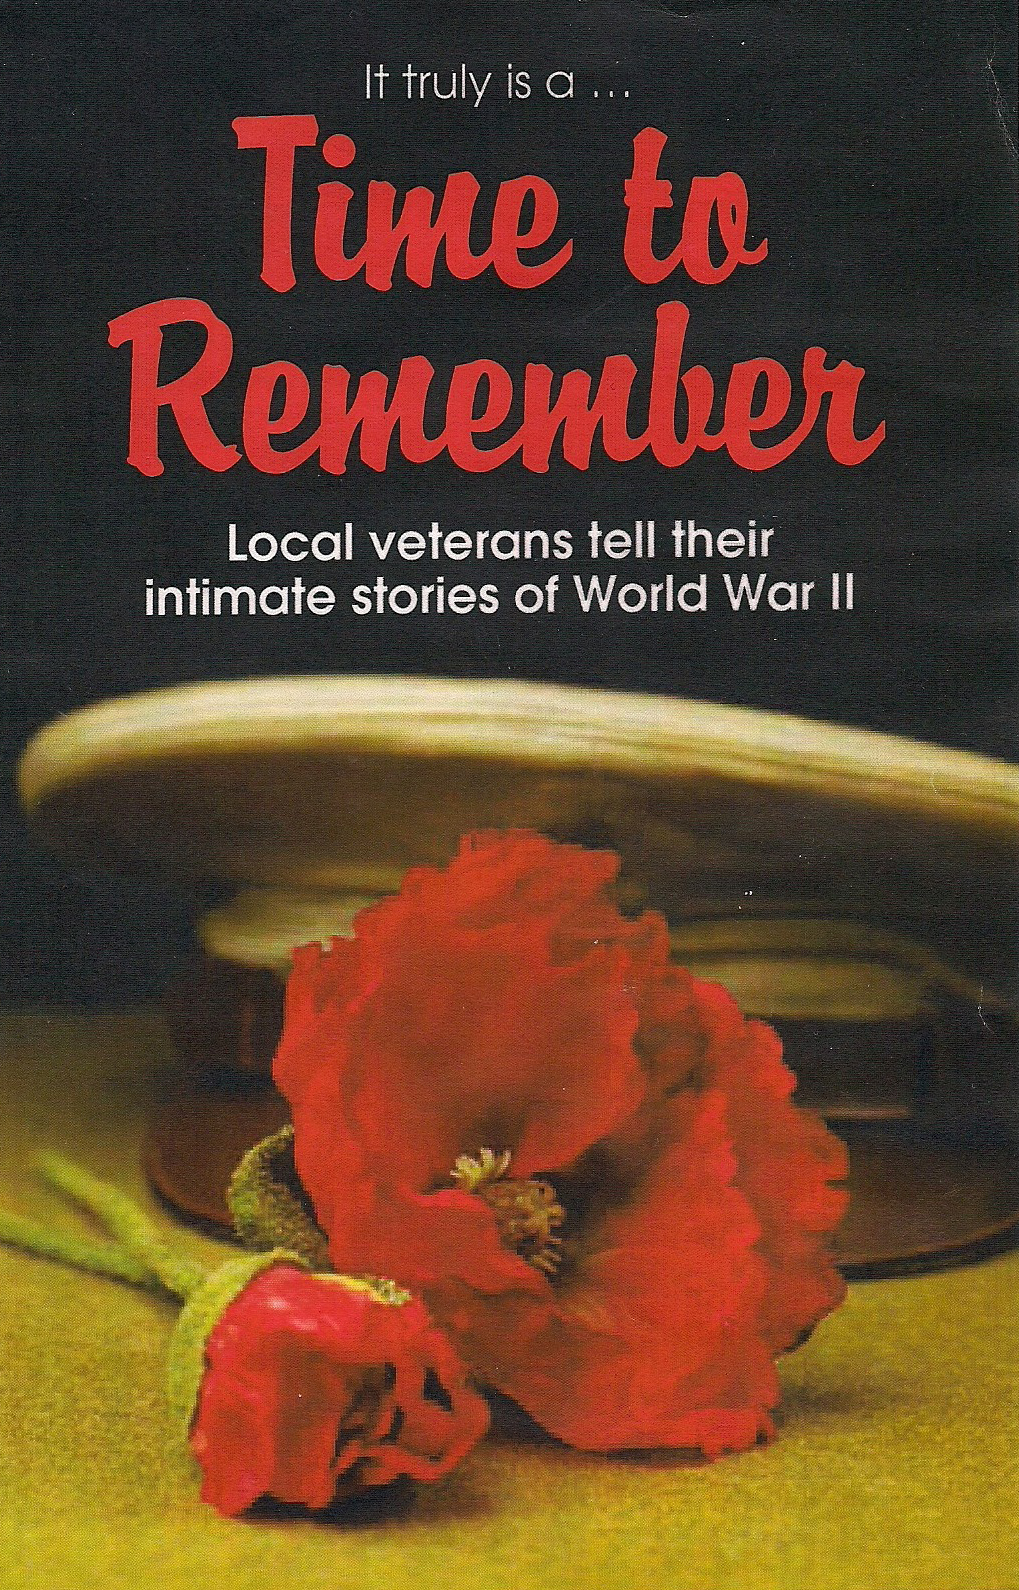 L'affiche de la vidéo « Time to Remember ». Le texte se lit comme suit : 